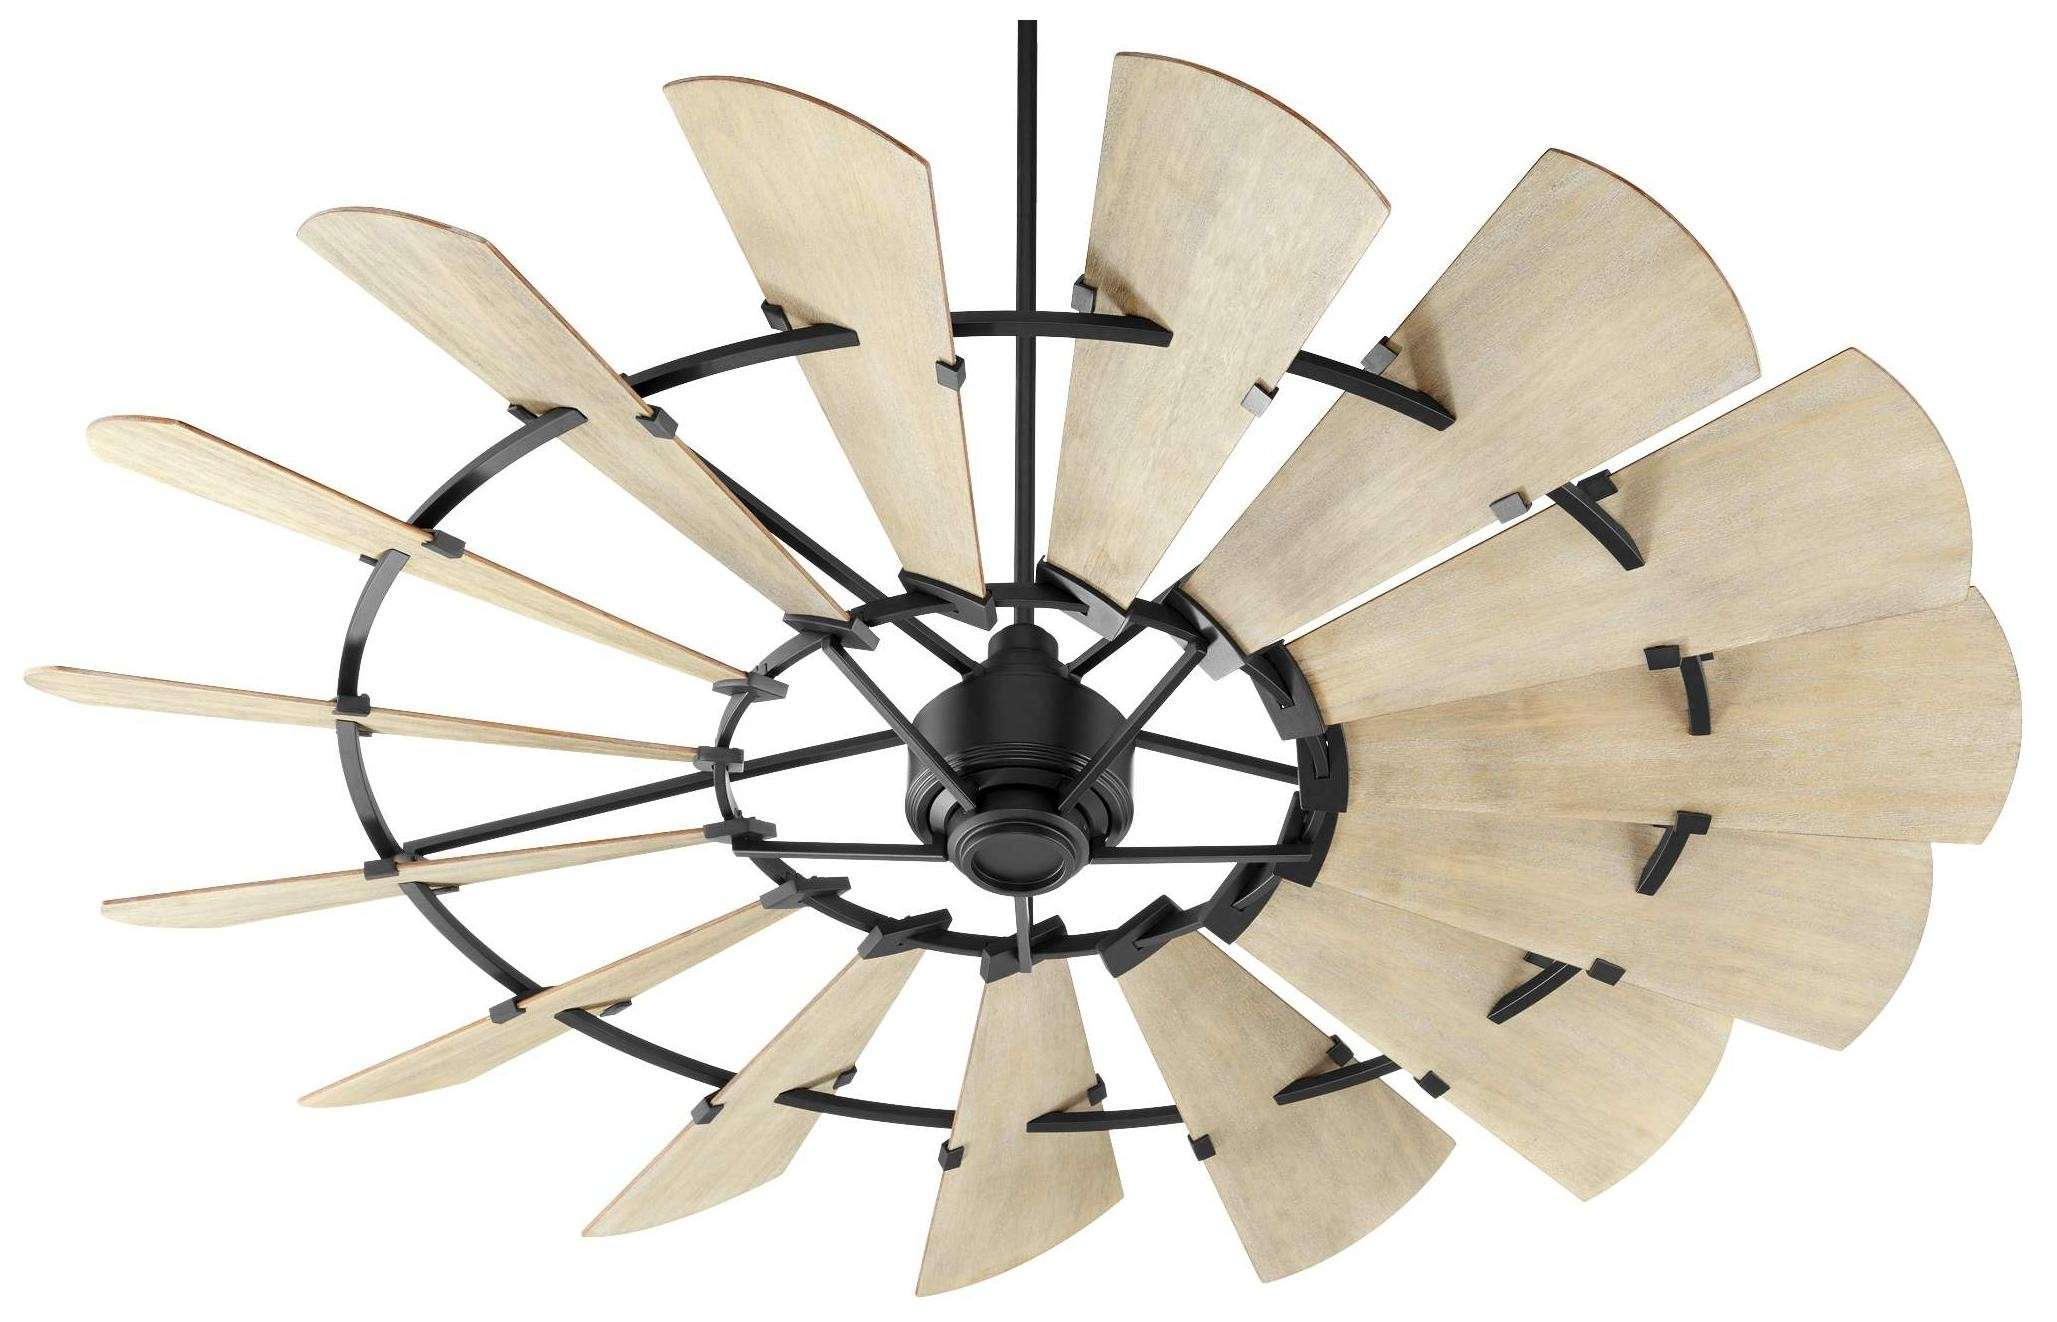 Quorum Windmill Ceiling Fan Model 97215-69 in Noir Black